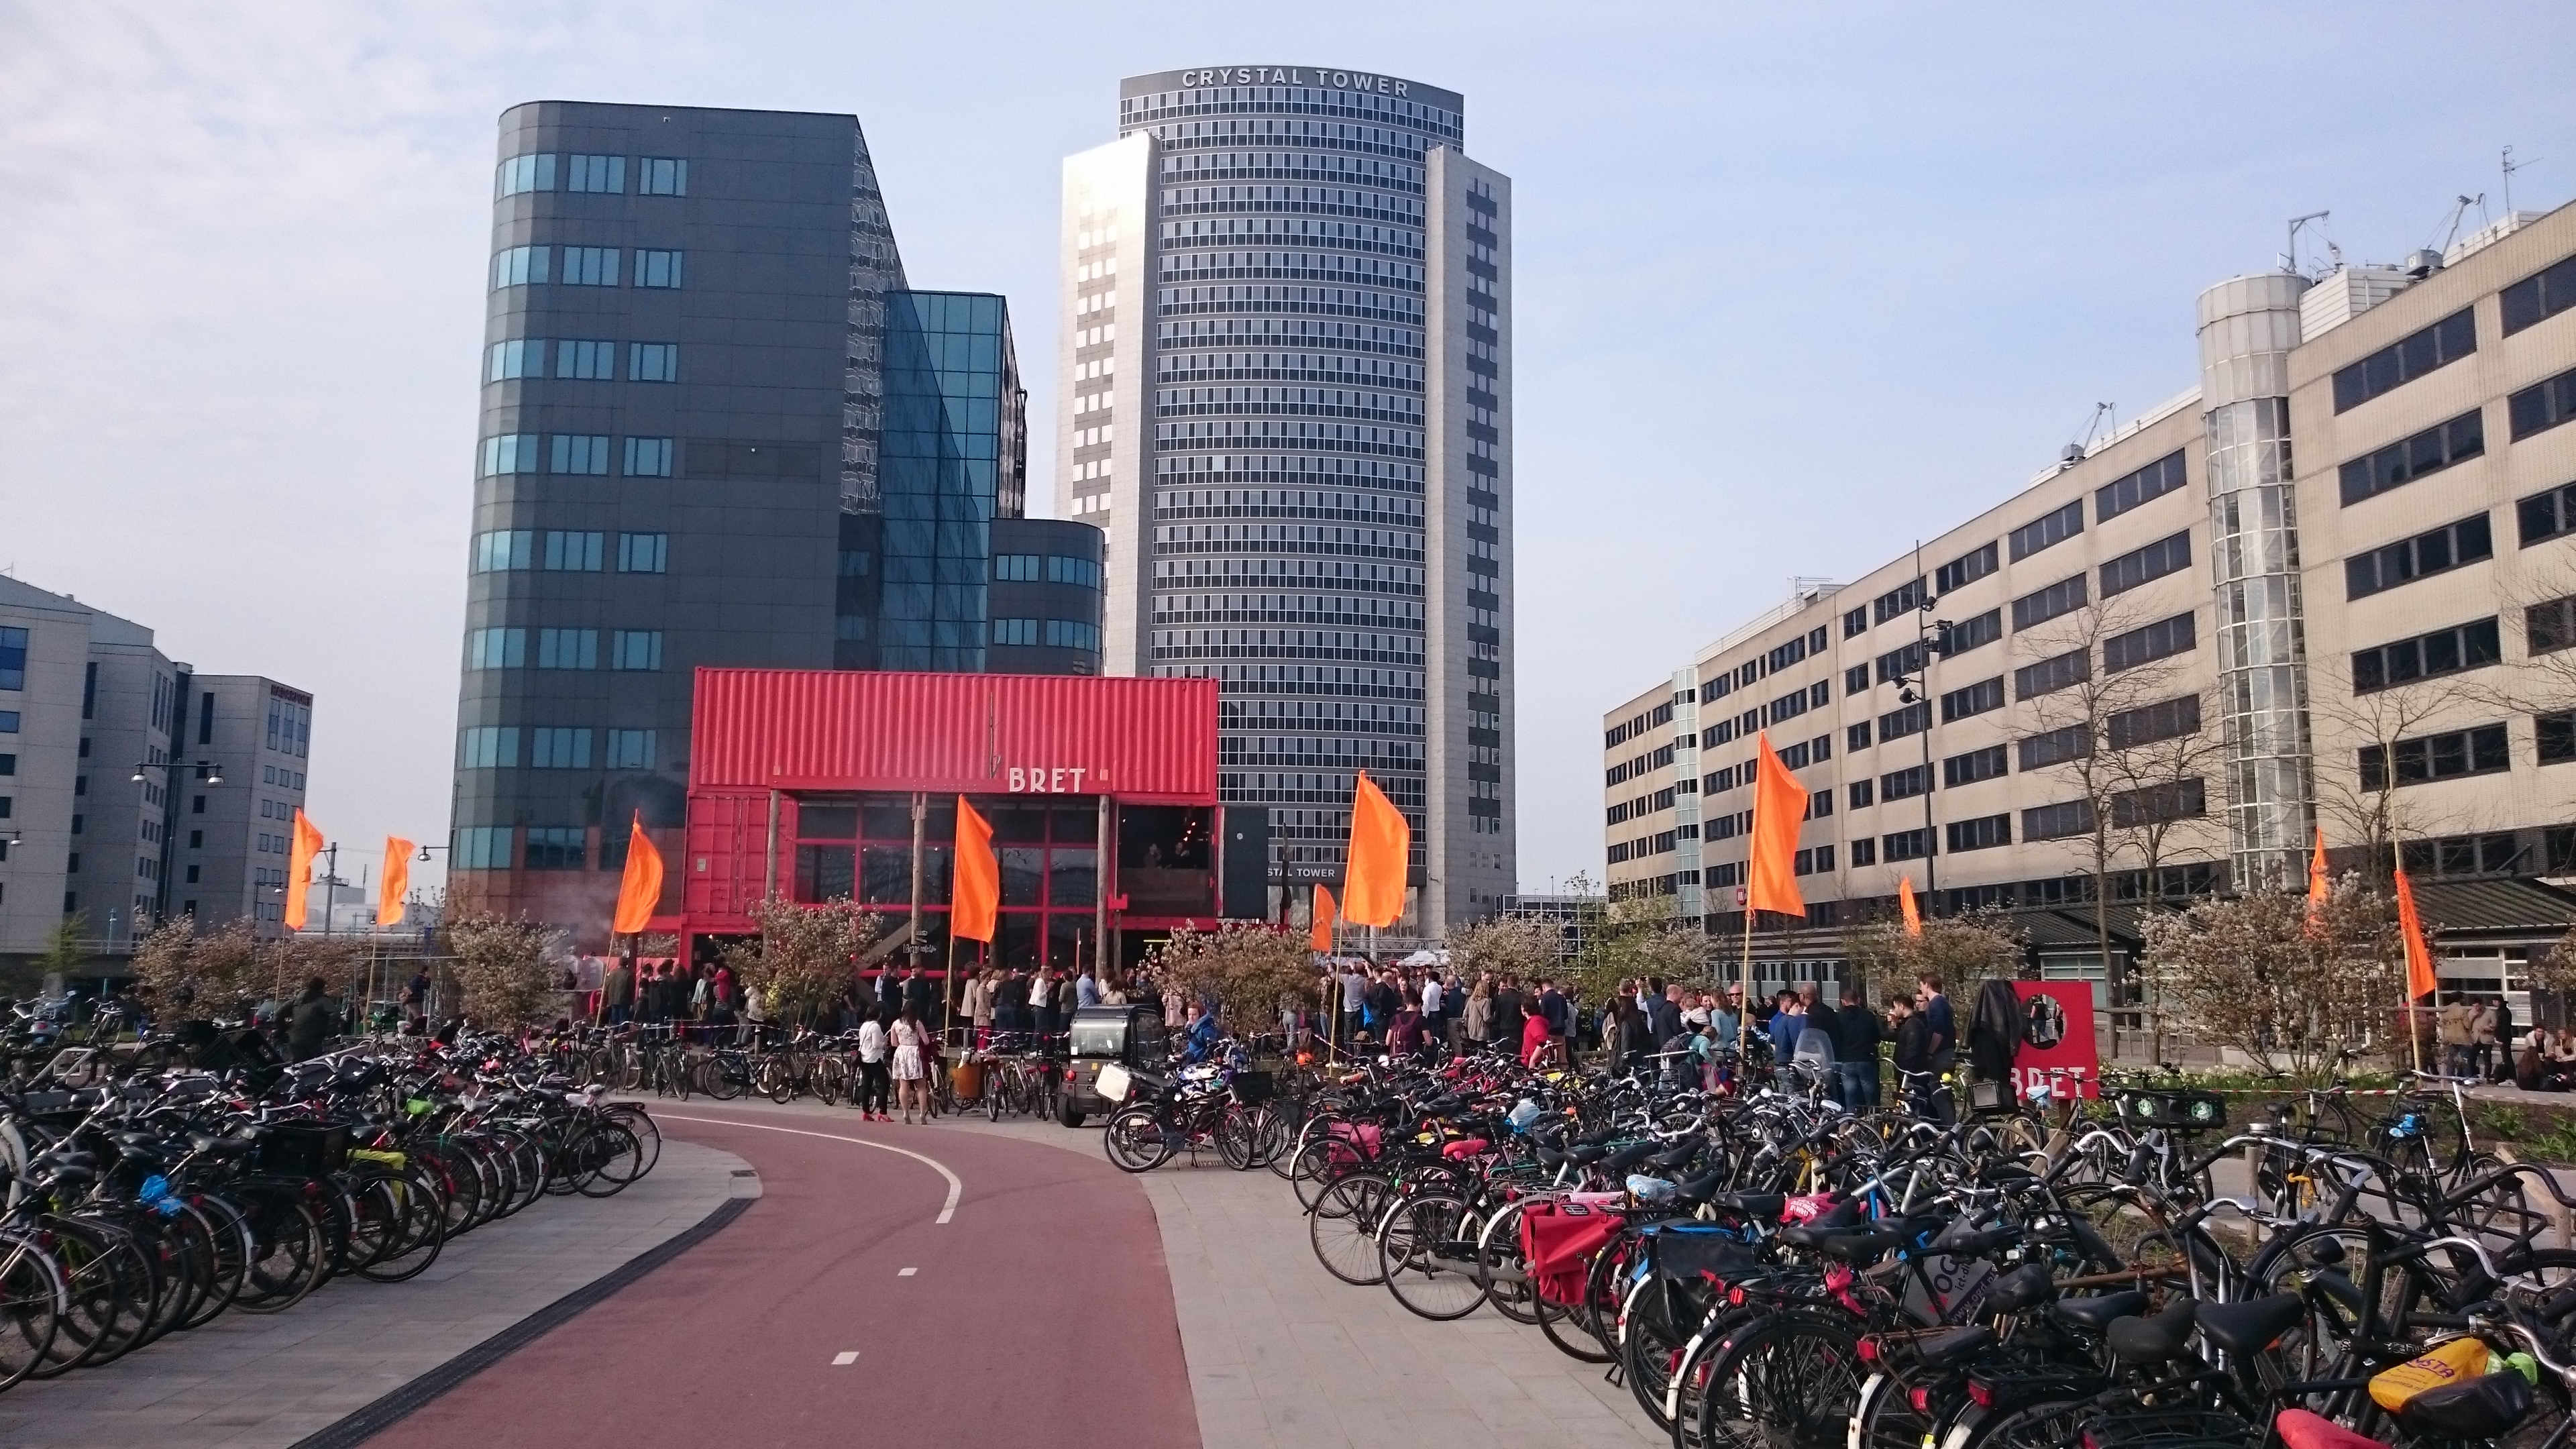 Bret beer bar. Part of the redevelopment of the Sloterdijk station area. Photo: author